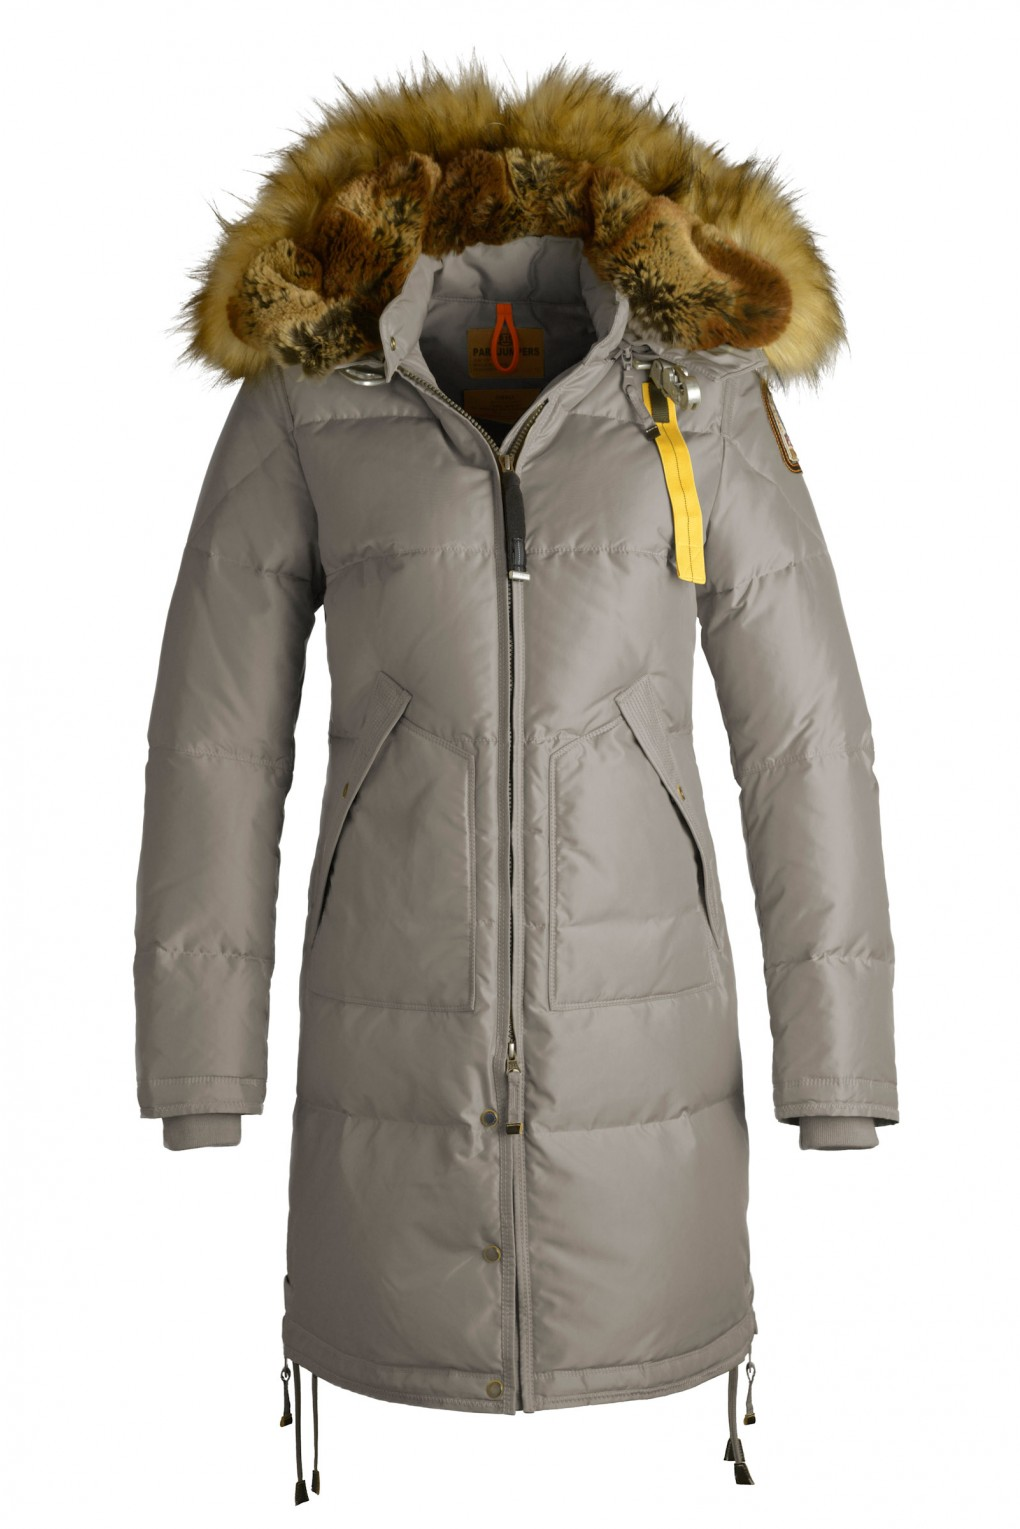 parajumpers LONG BEAR ECO woman outerwear Cappuccino